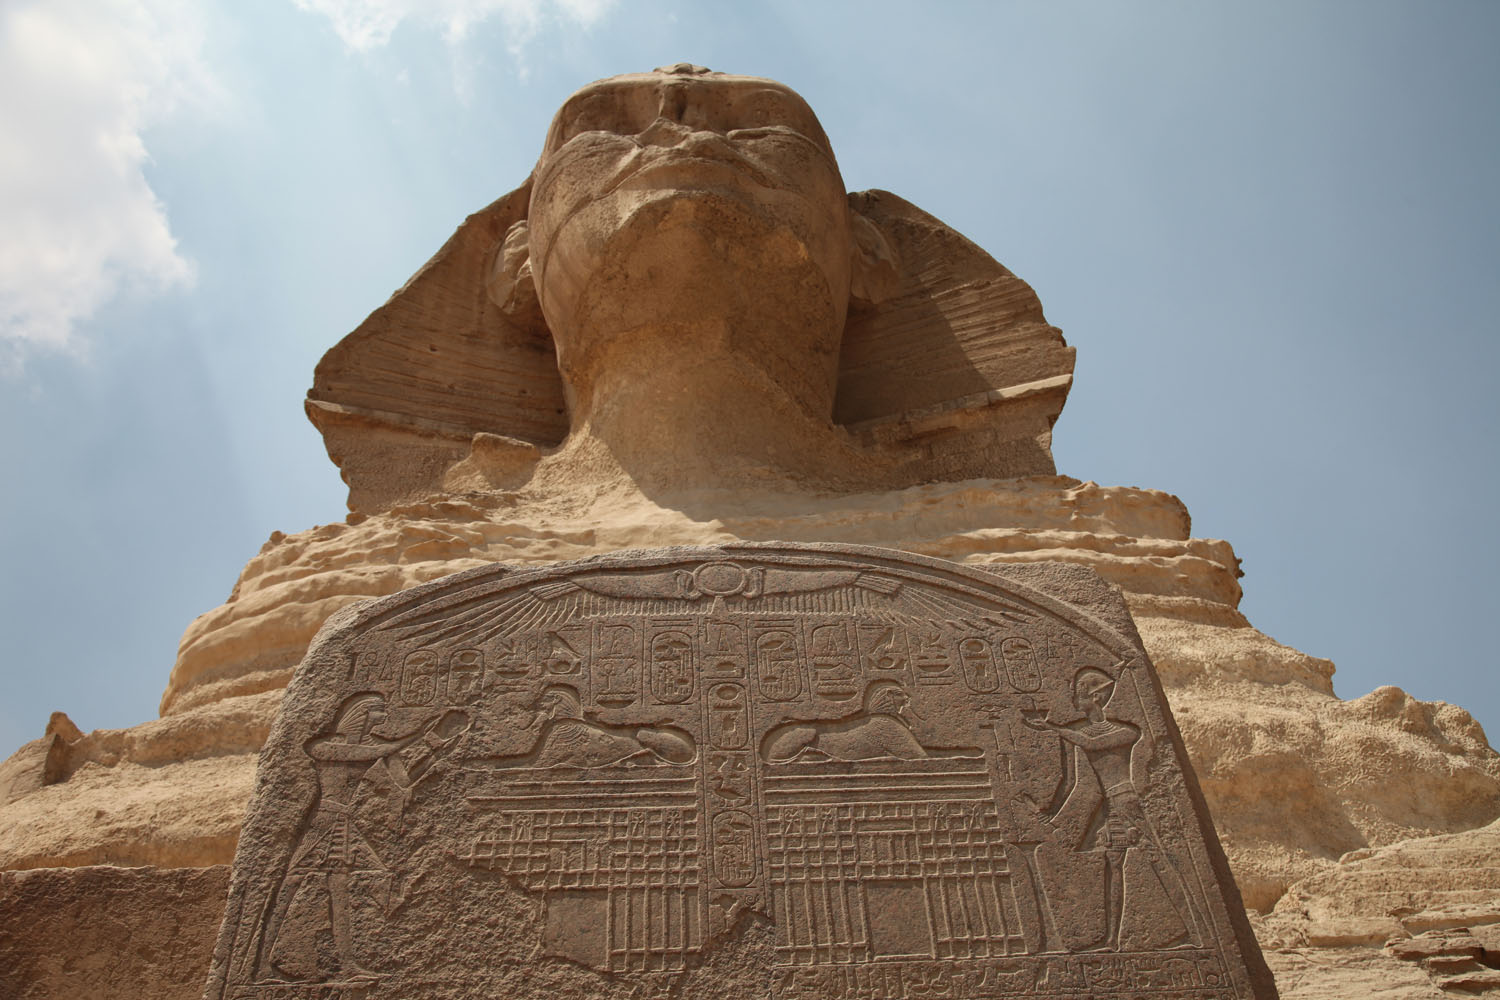 Sphinx with Dream stele